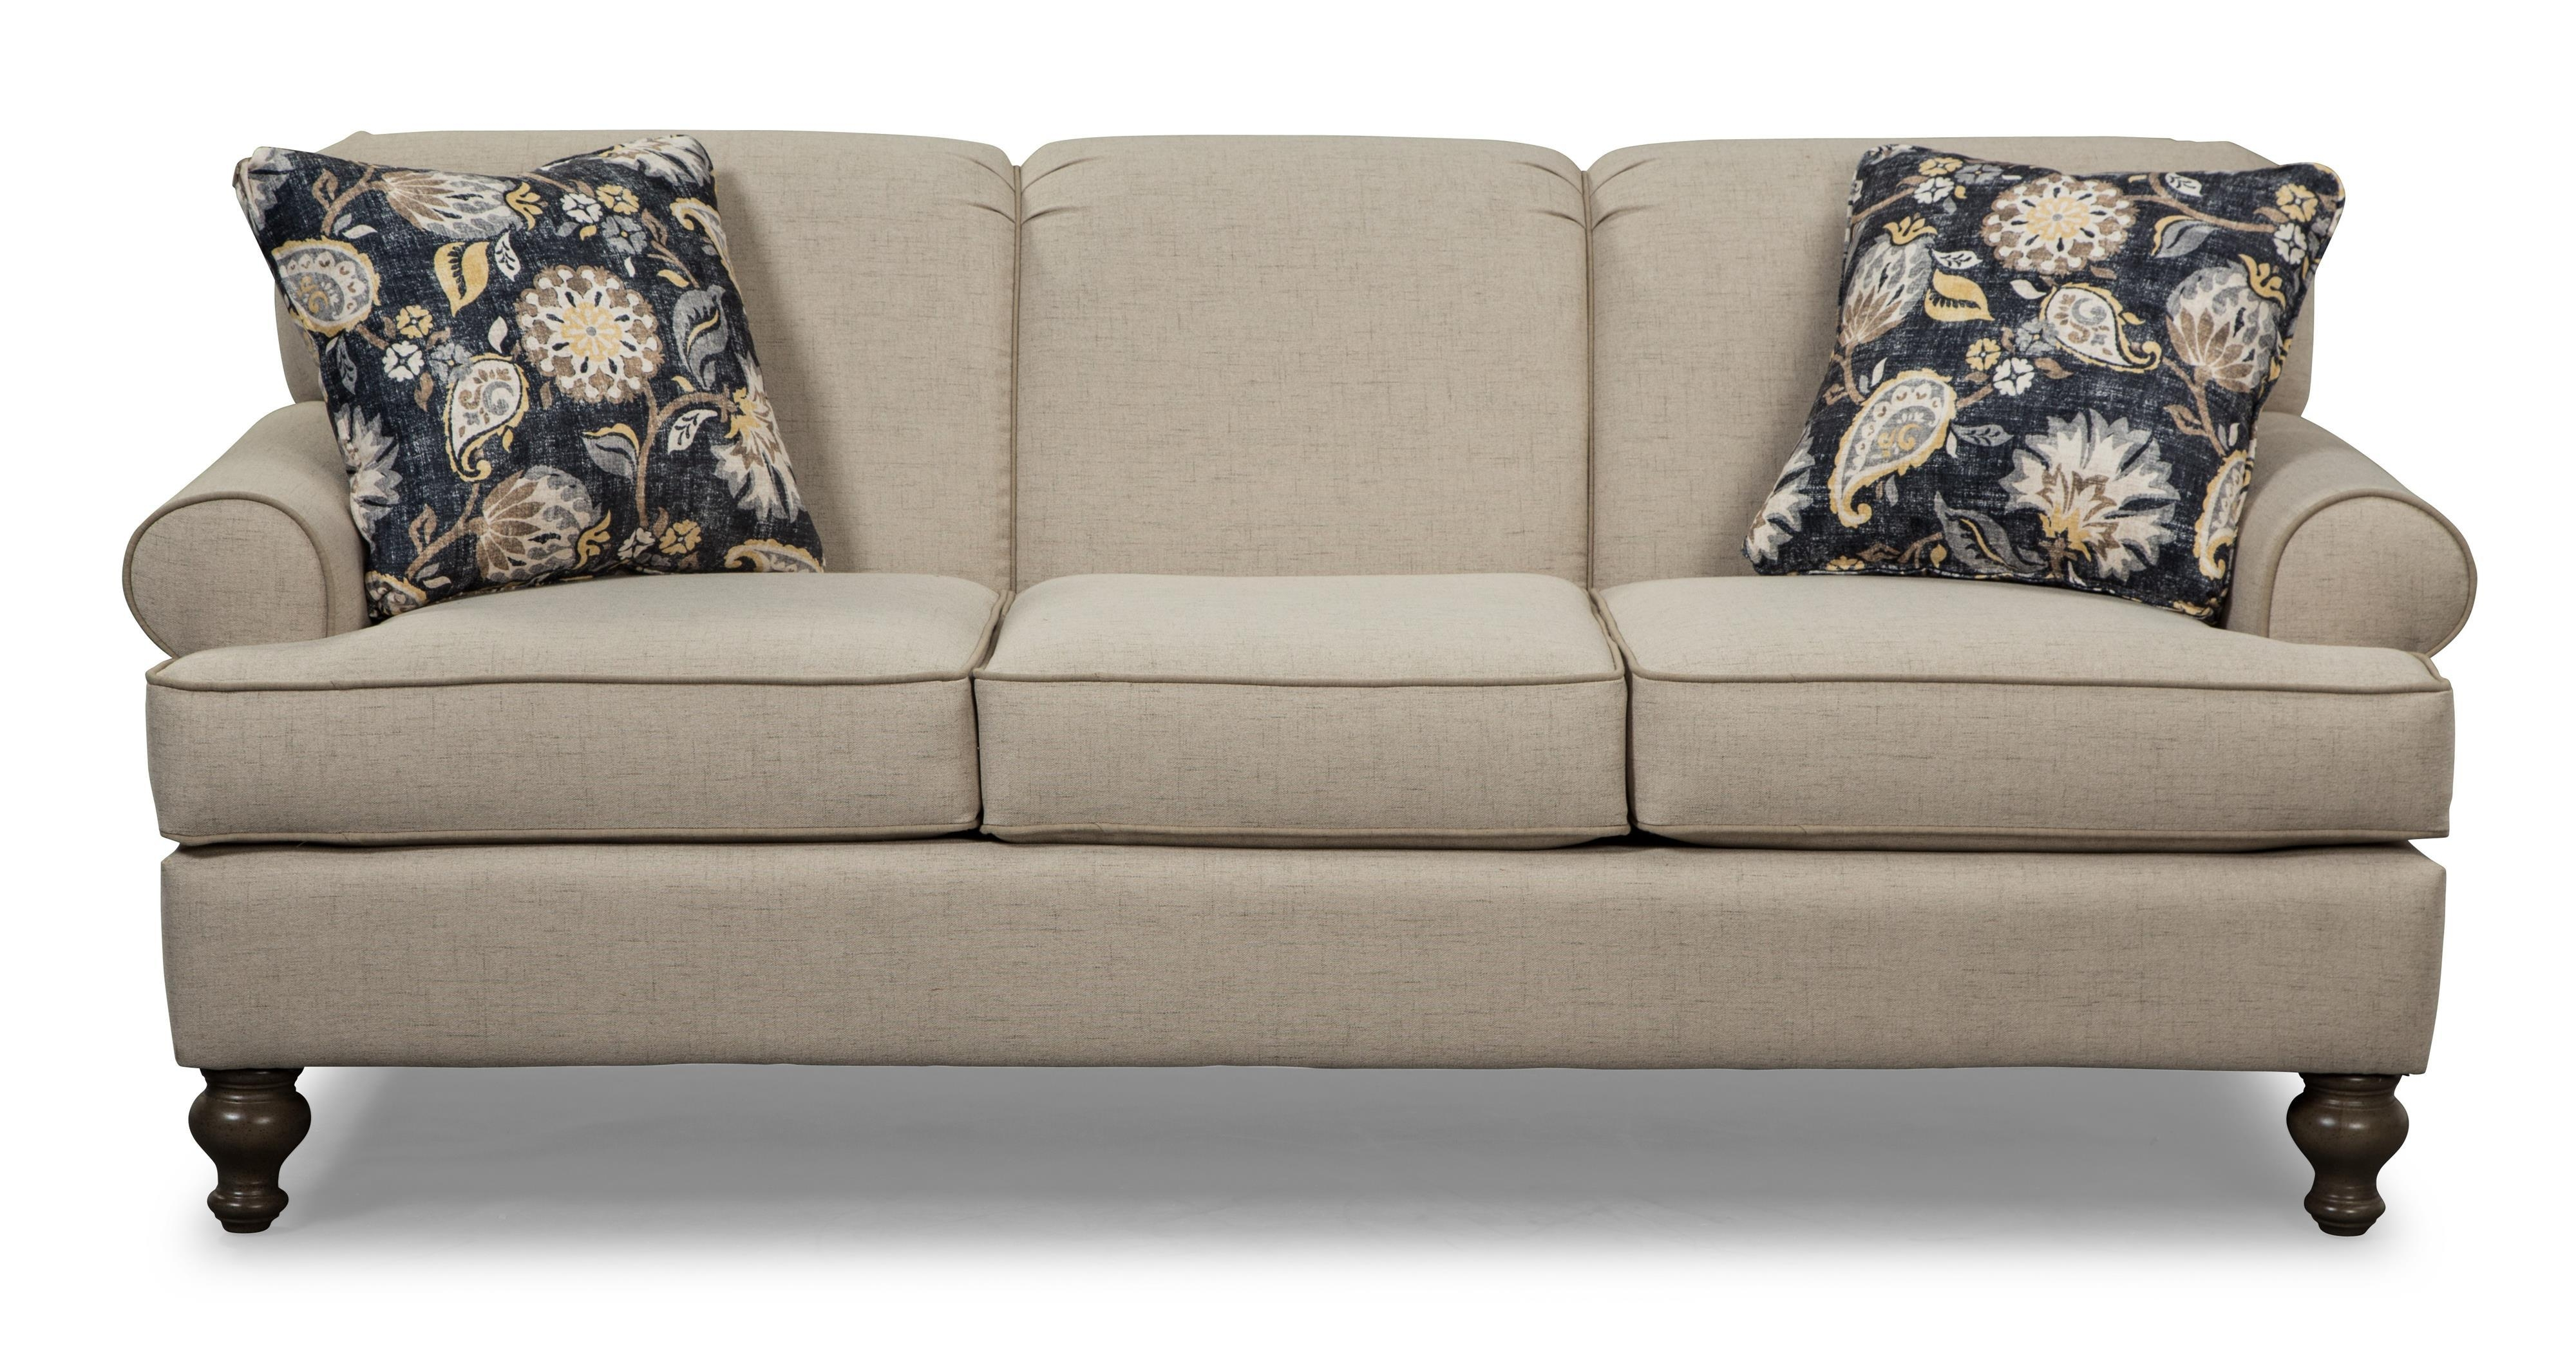 Small Scale Traditional Sofacraftmaster | Wolf And Gardiner Throughout Small Scale Sofas (Image 16 of 20)